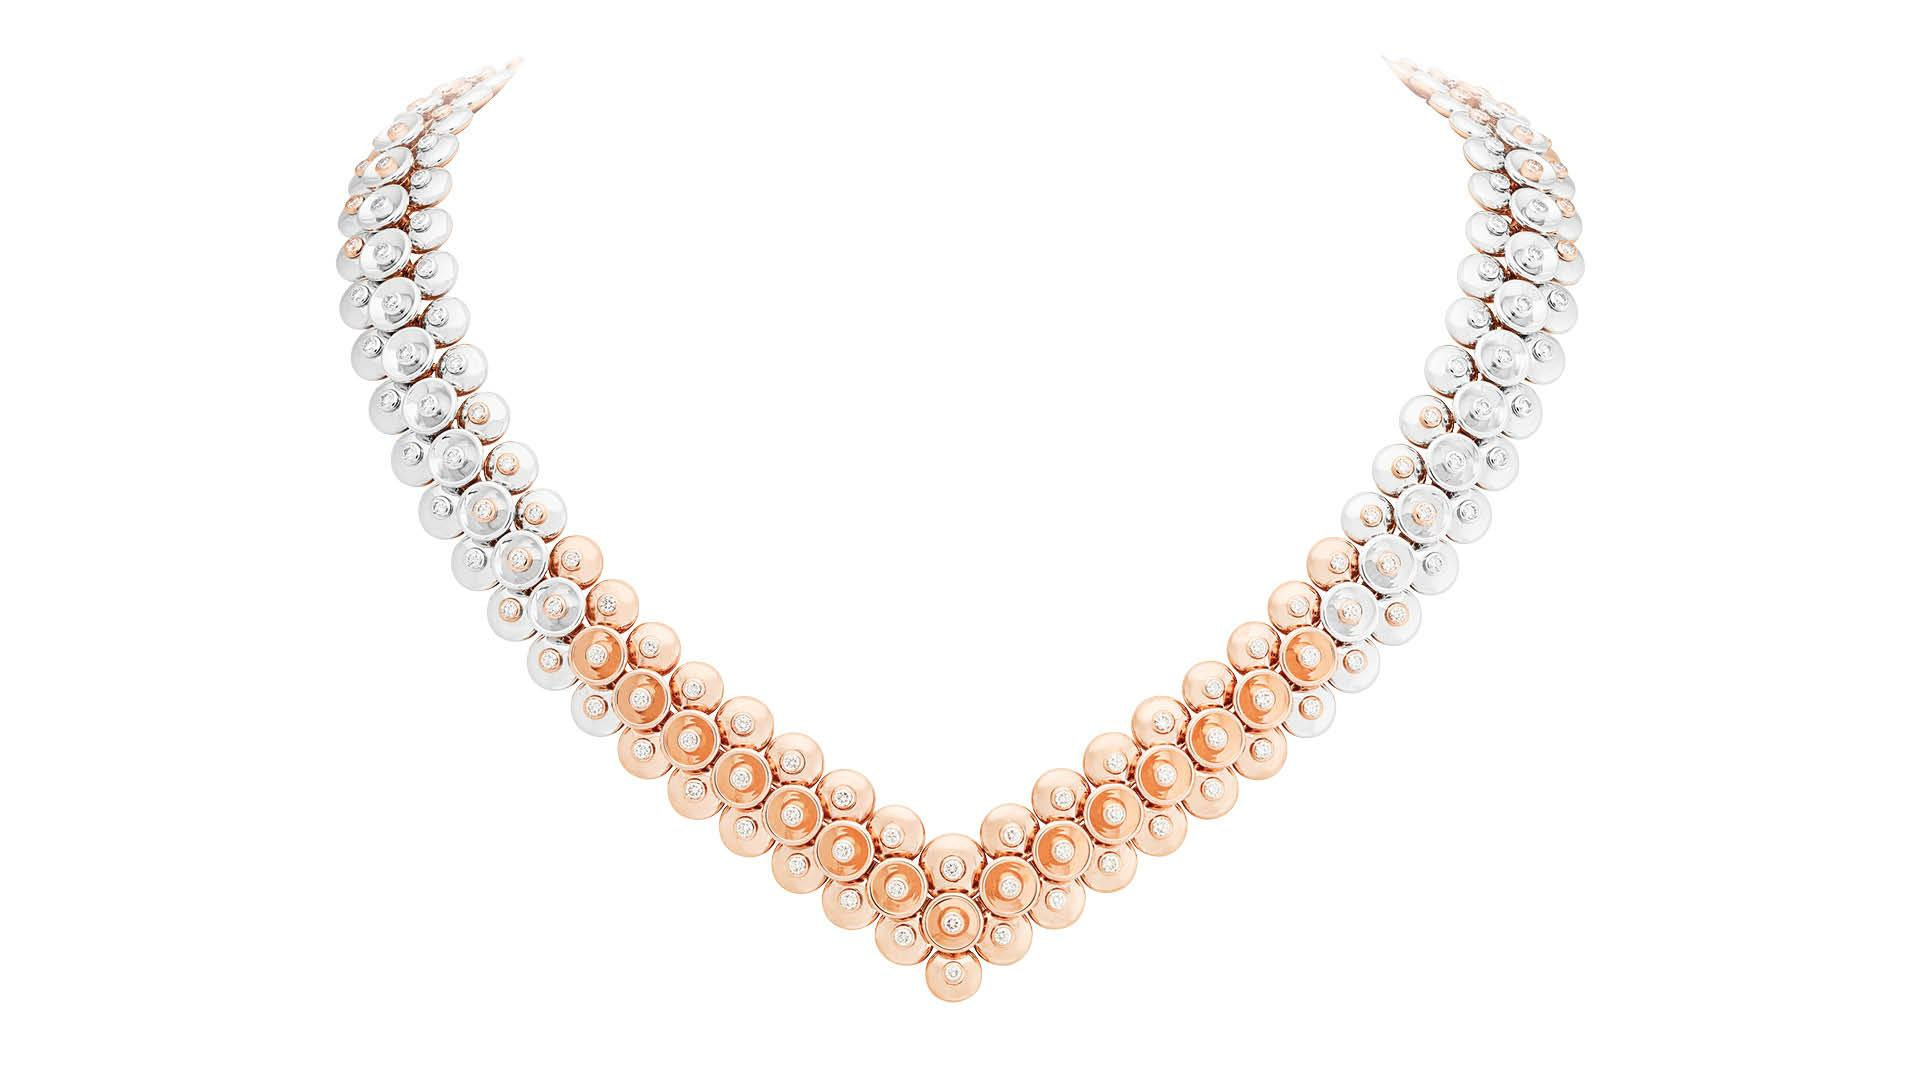 Van Cleef & Arpes Bouton d'or Necklace